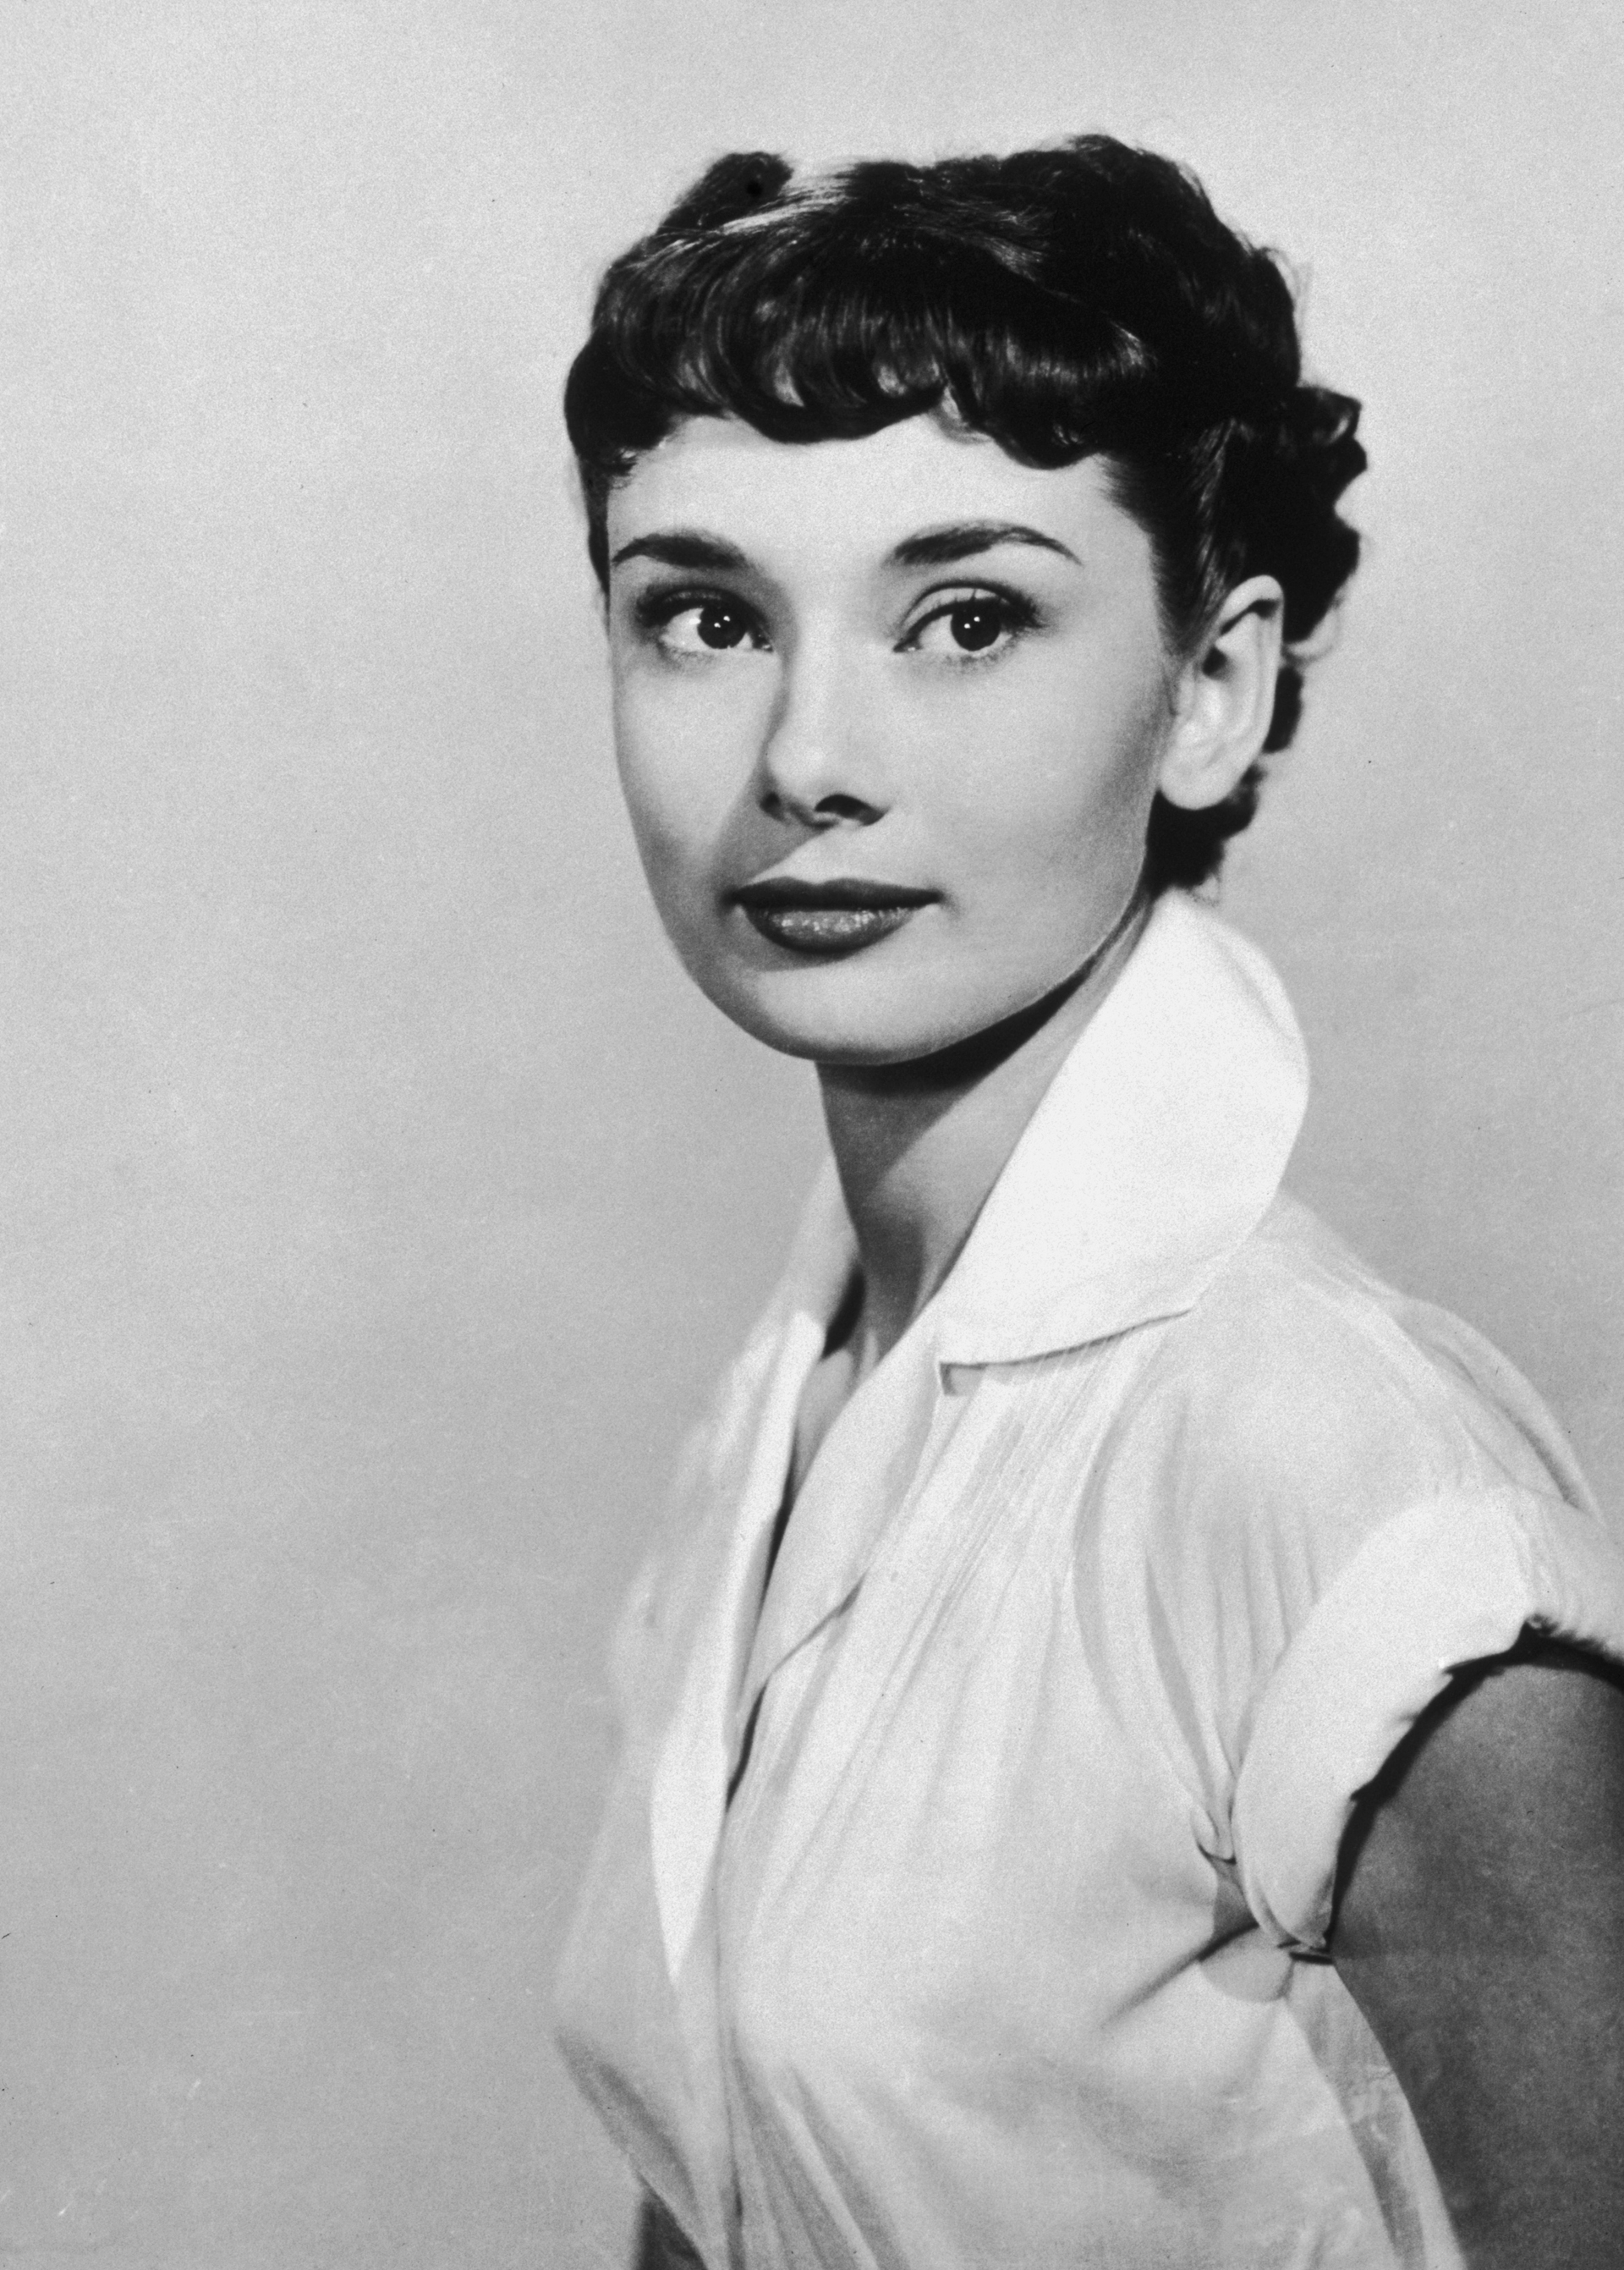 styling short pixie hair 47 best pixie cuts of all time iconic pixie haircut ideas 1940 | 548f378a4661c rbk pixie cuts audrey hepburn s2 63096803